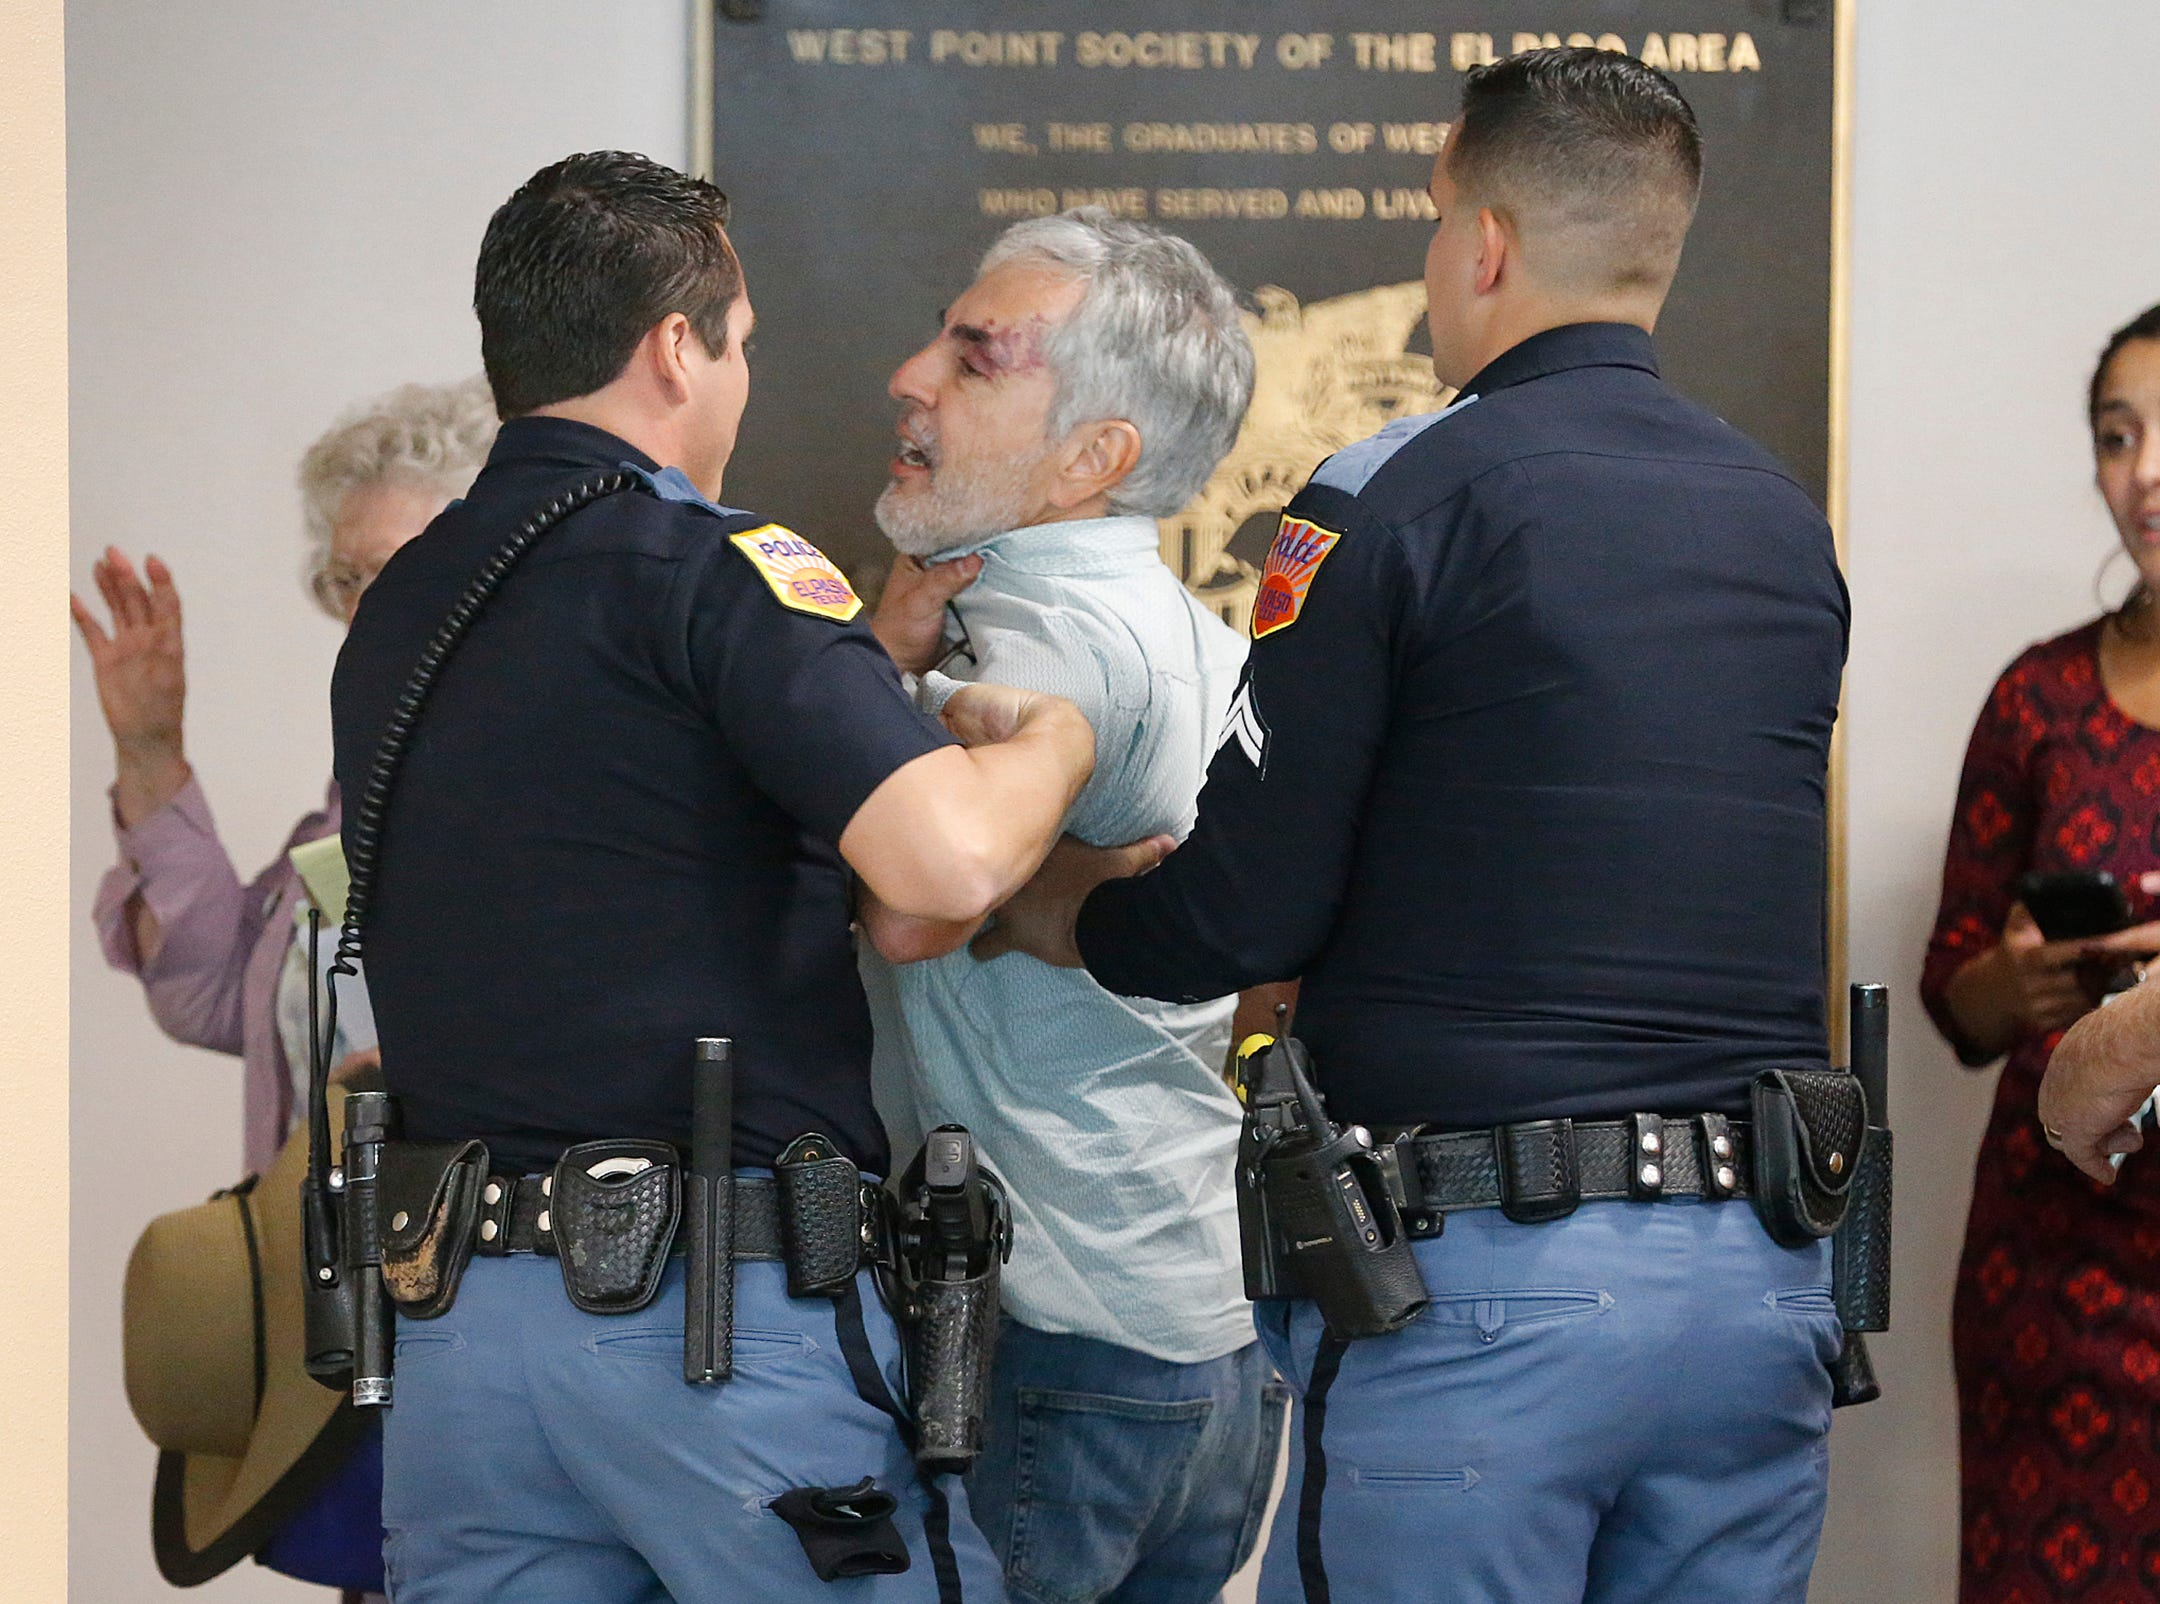 """El Paso police officers took Jud Burgess into custody moments after the City Council voted 7-1 to place the Mexican American Cultural Center at the Downtown library. As public comment on the plan was about to begin, Burgess went up to City Manager Tommy Gonzalez and yelled """"this was all a sideshow you all wasted our time."""""""